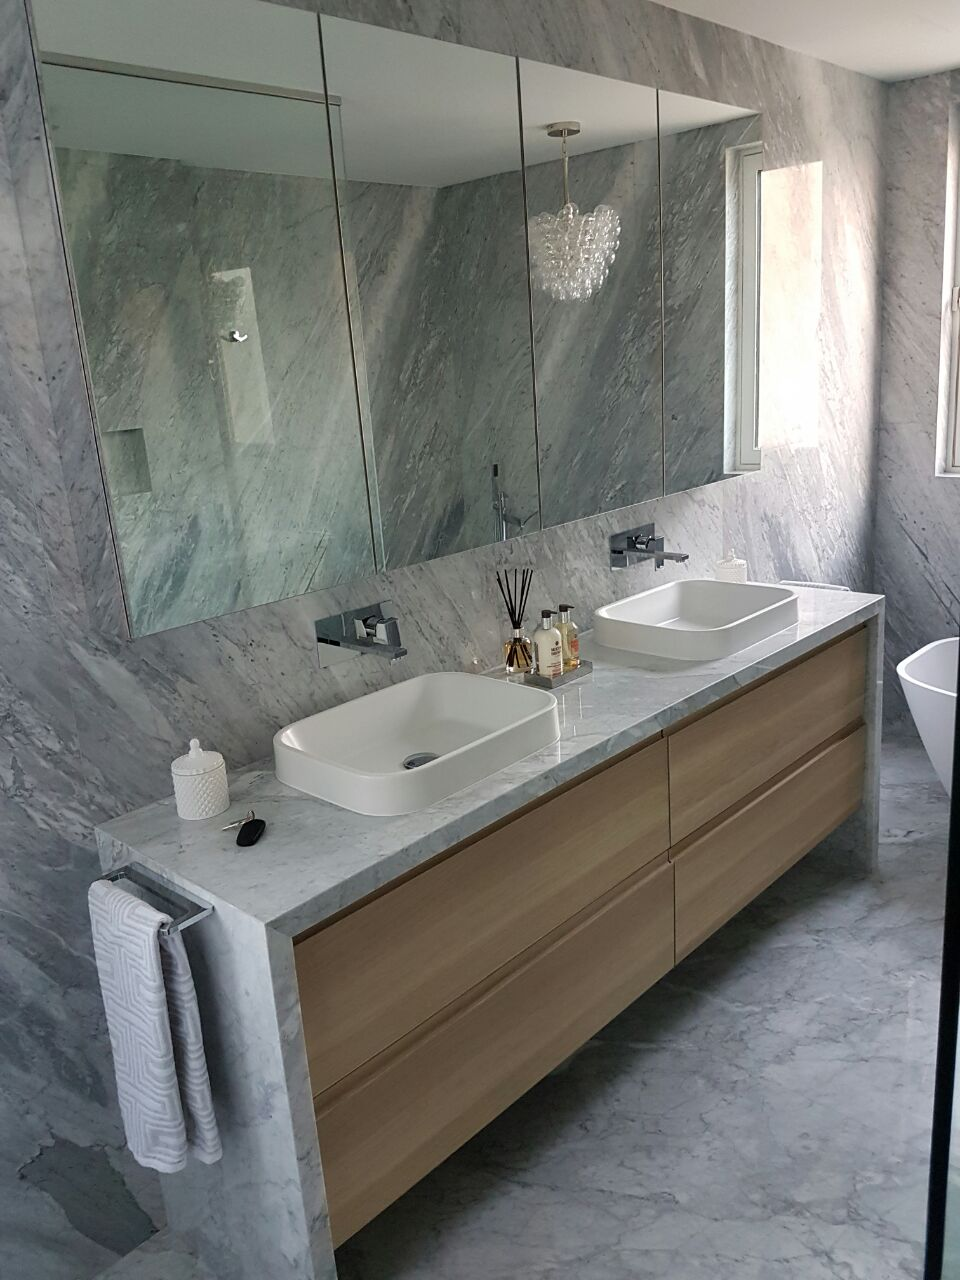 suppliers at alibaba marble molded for and manufacturers tops vanity white showroom toilet com